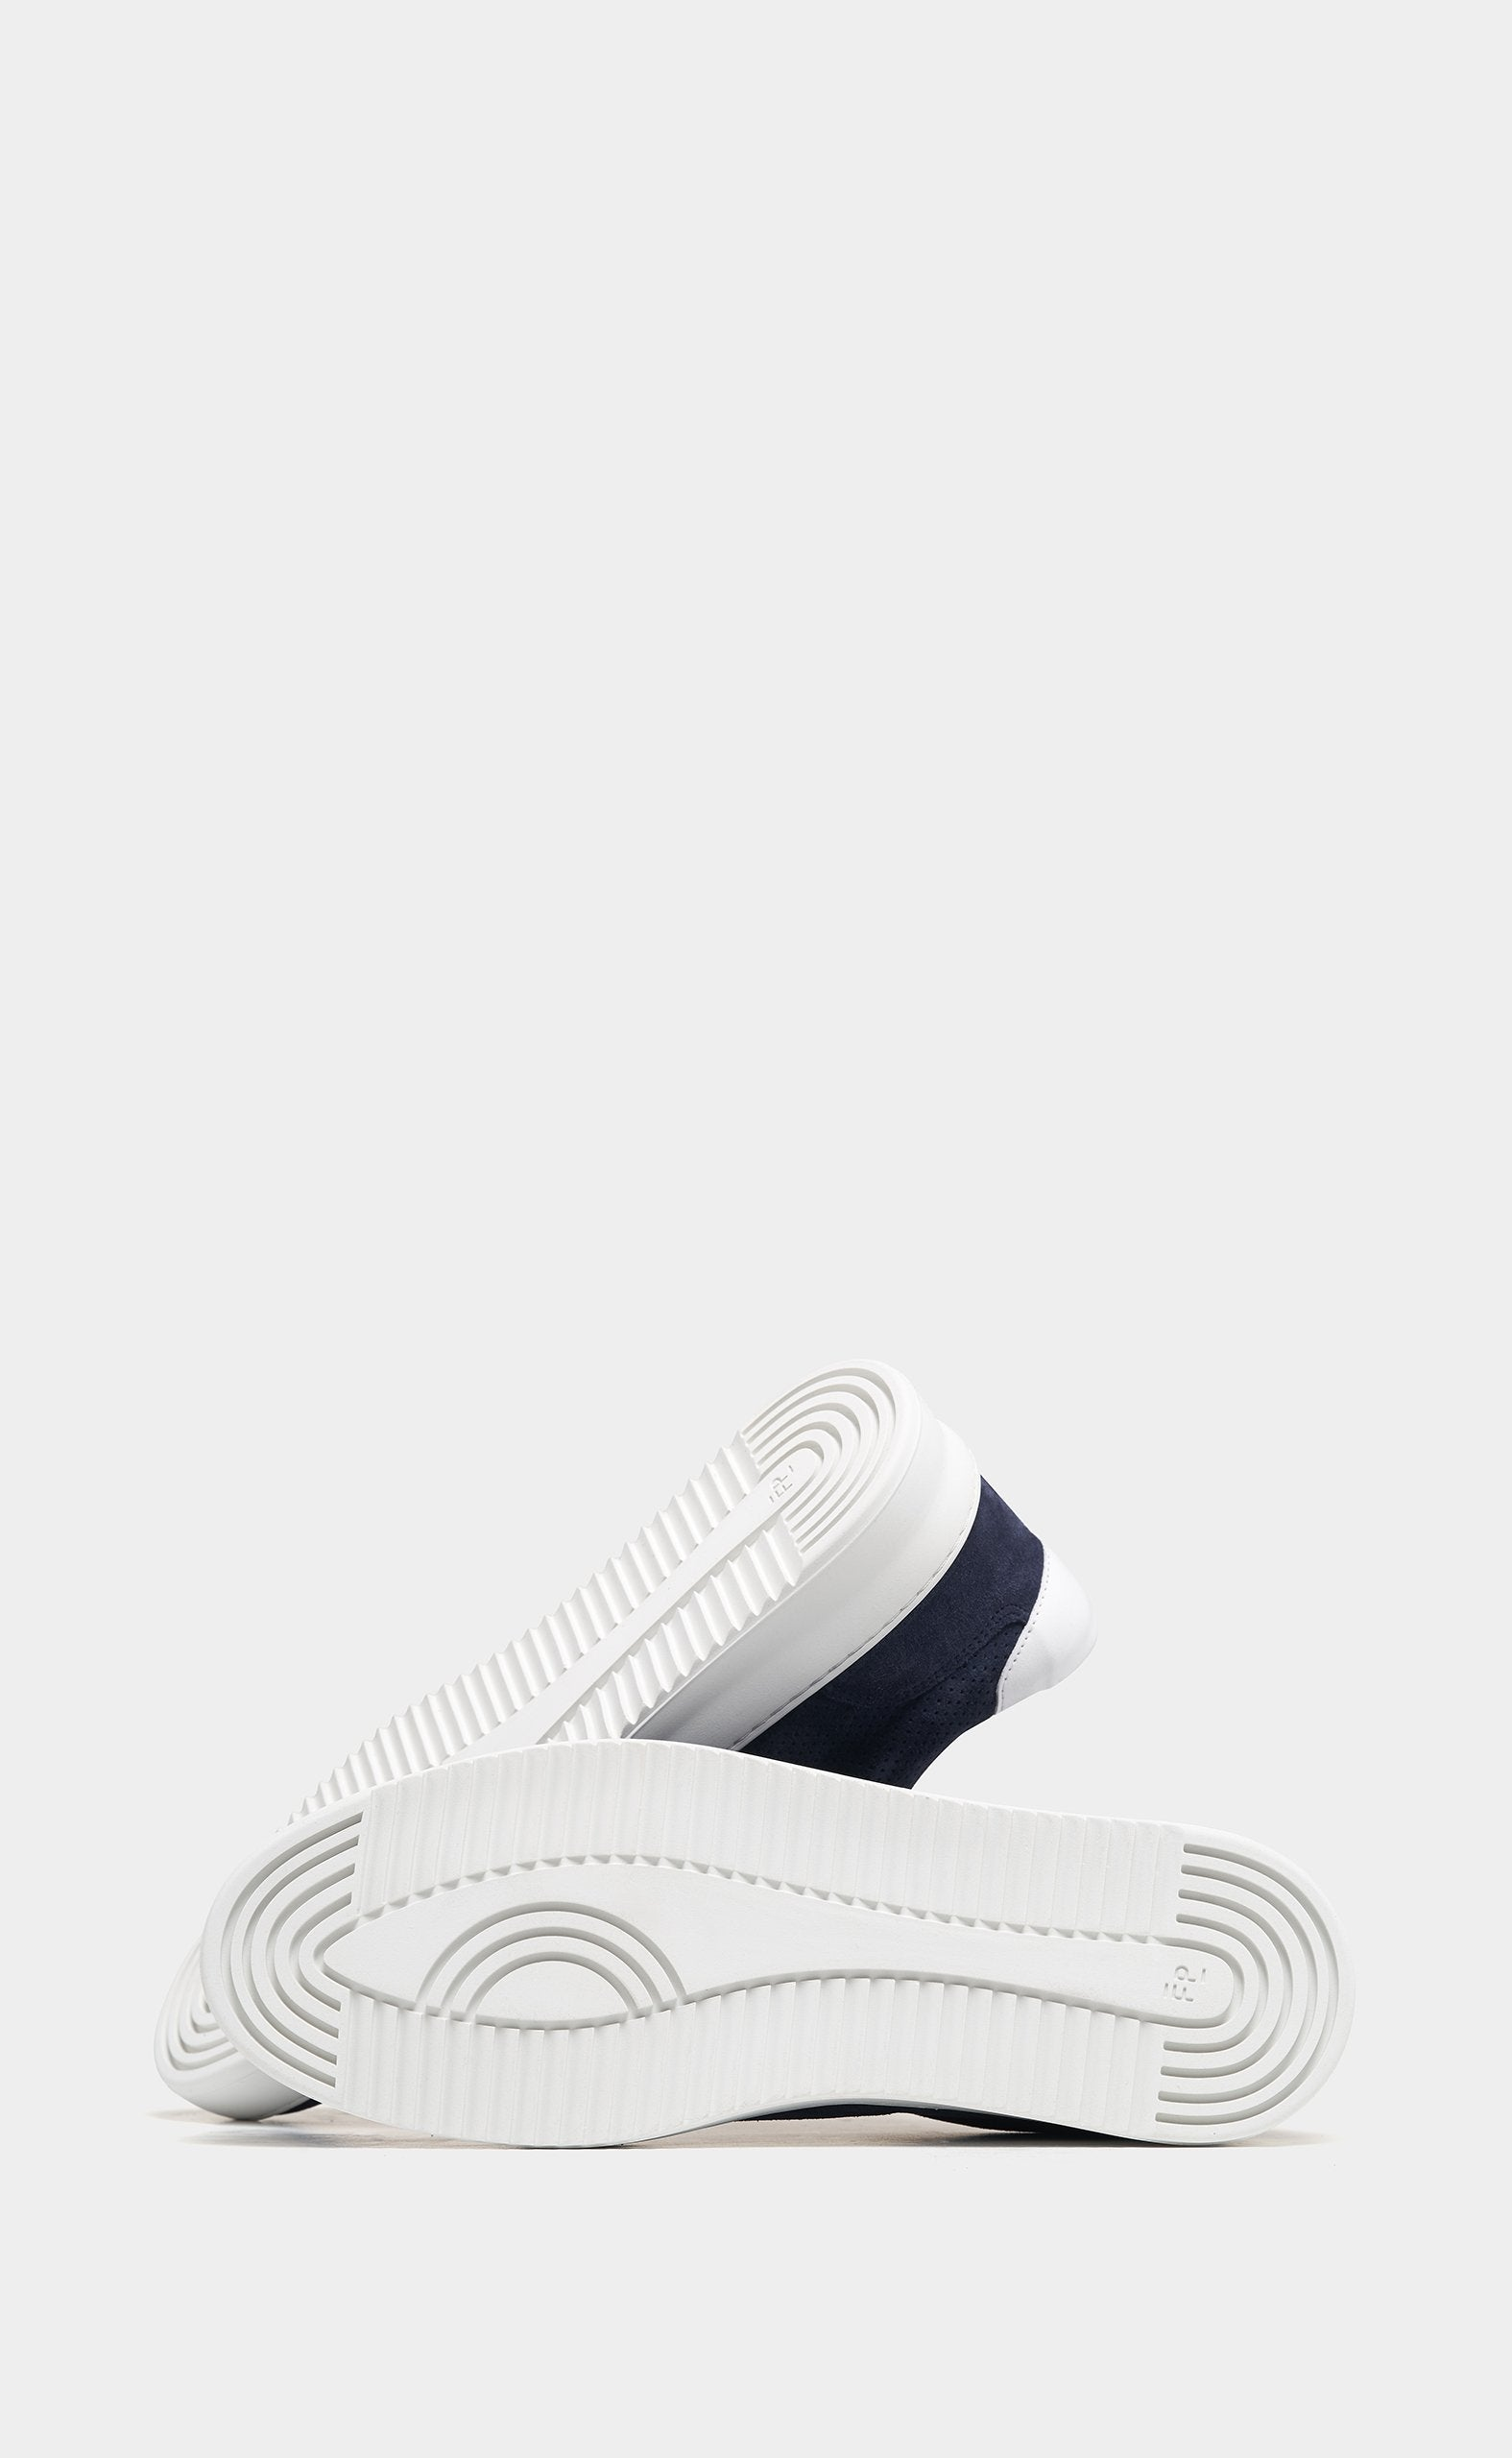 Mondo Ripple Perforated Navy - men